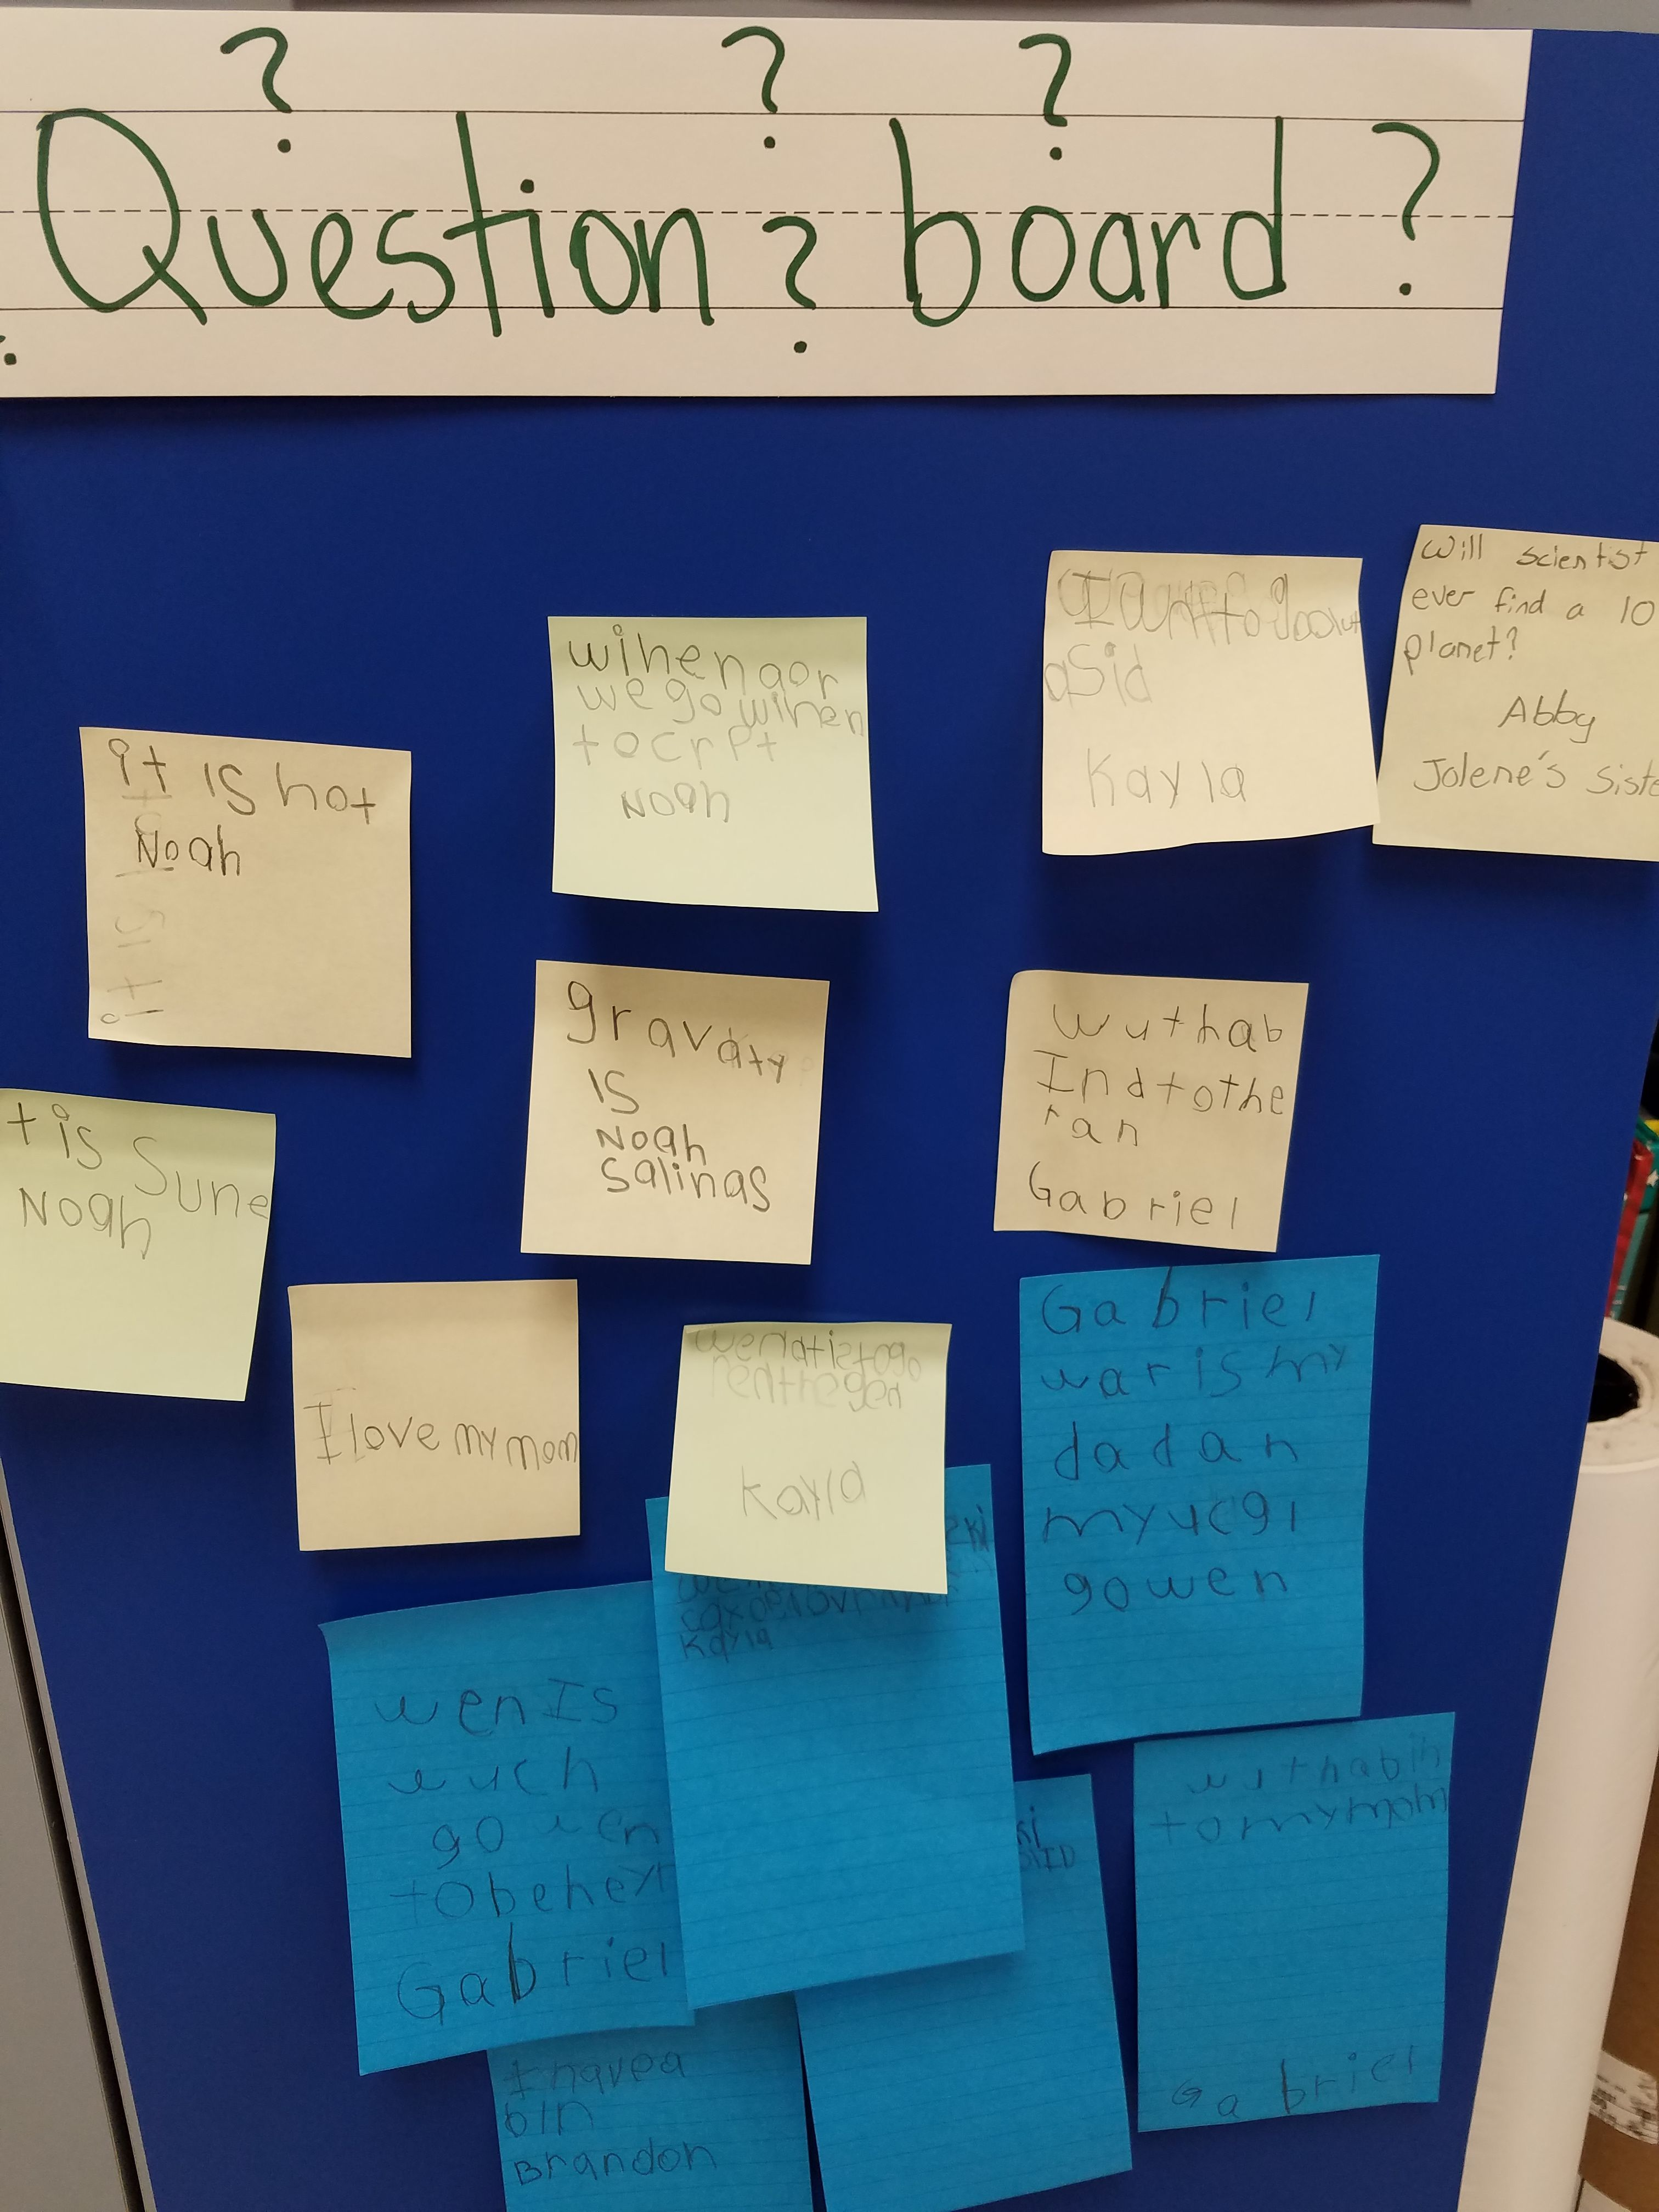 Create a question board to post questions and set up a question box area for children to write questions.